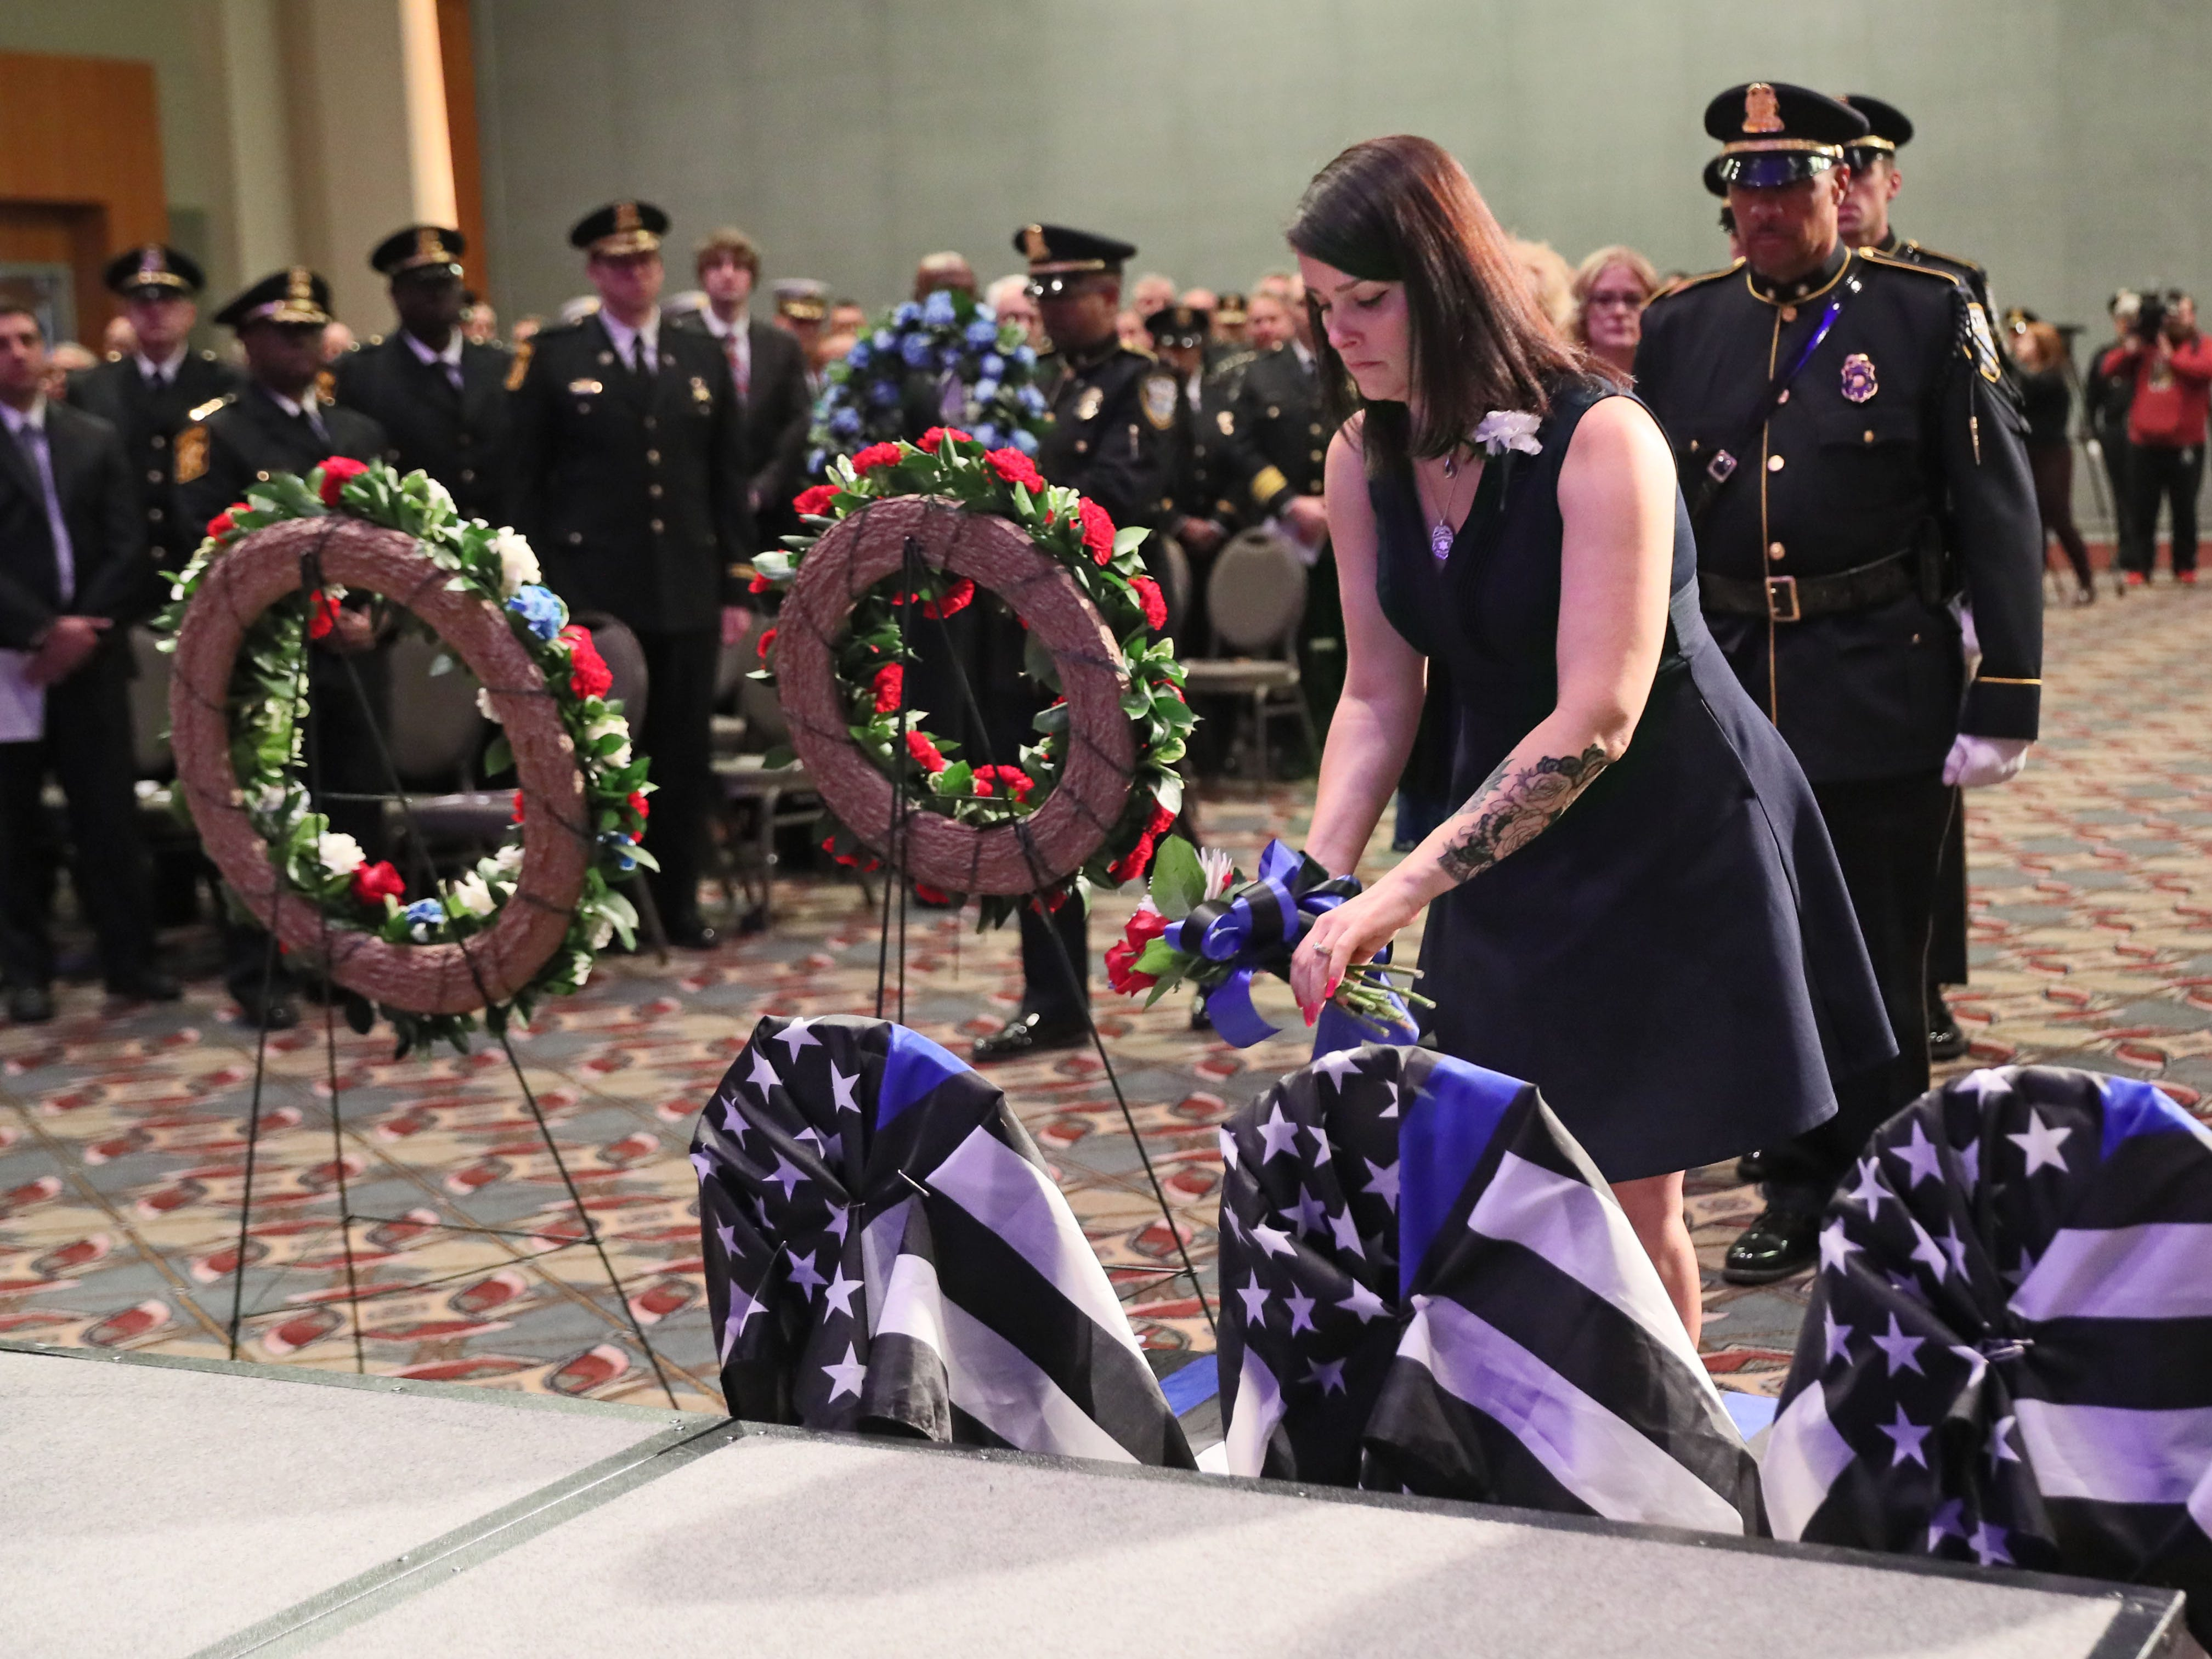 Christy Irvine-Bachman lays a memorial wreath of flowers on a chair draped with the law enforcement flag in memory of Milwaukee Police Officer Charles Irvine Jr.